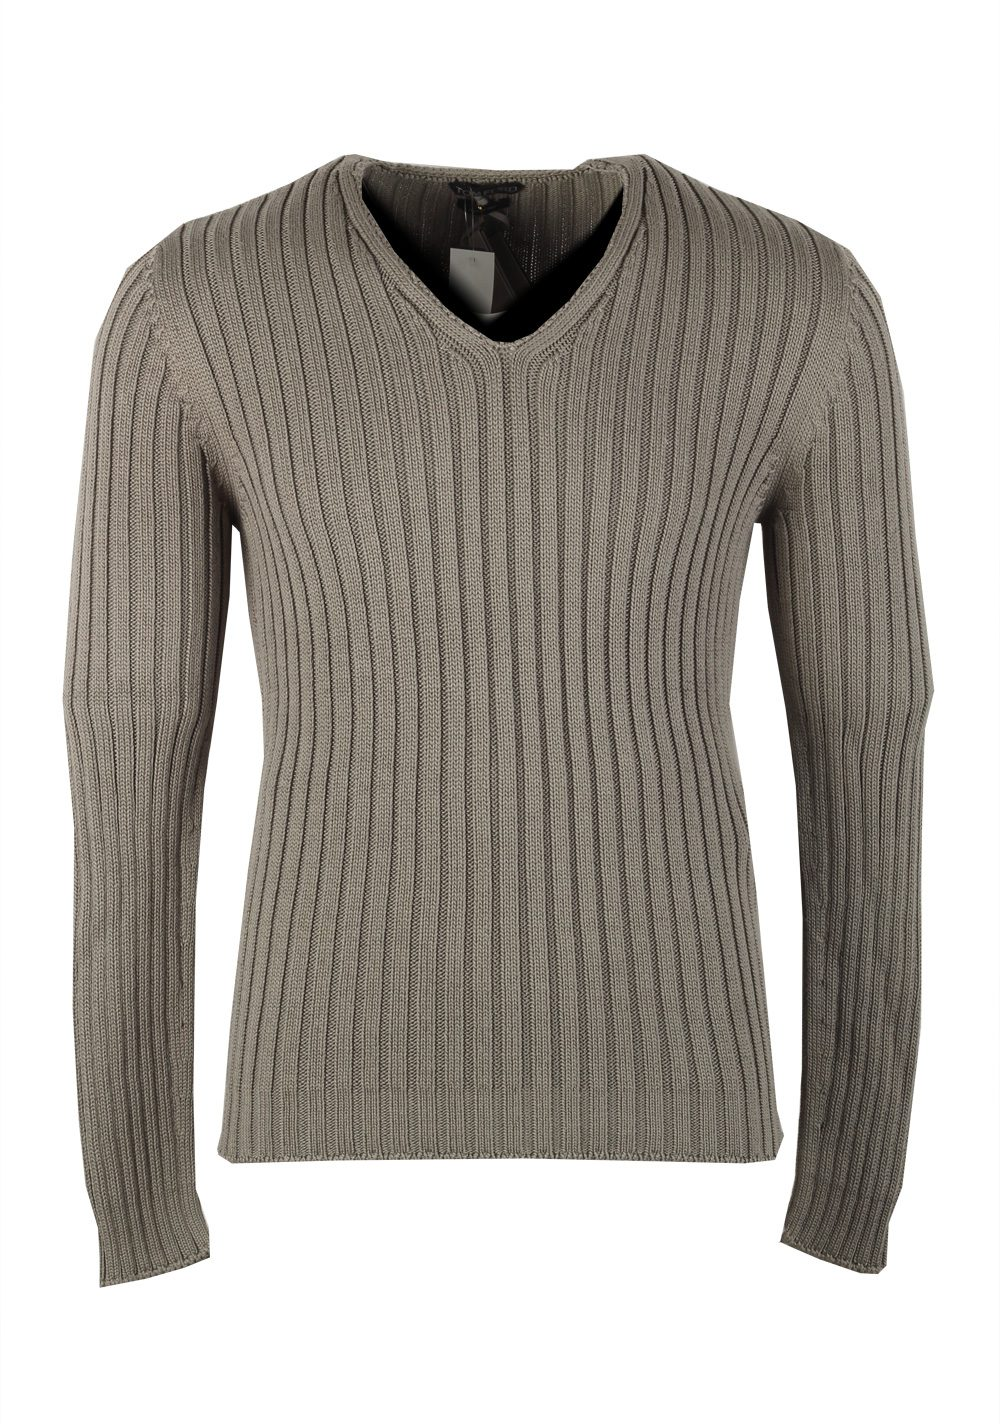 TOM FORD Green V Neck Sweater Size 48 / 38R U.S. In Cotton Silk | Costume Limité